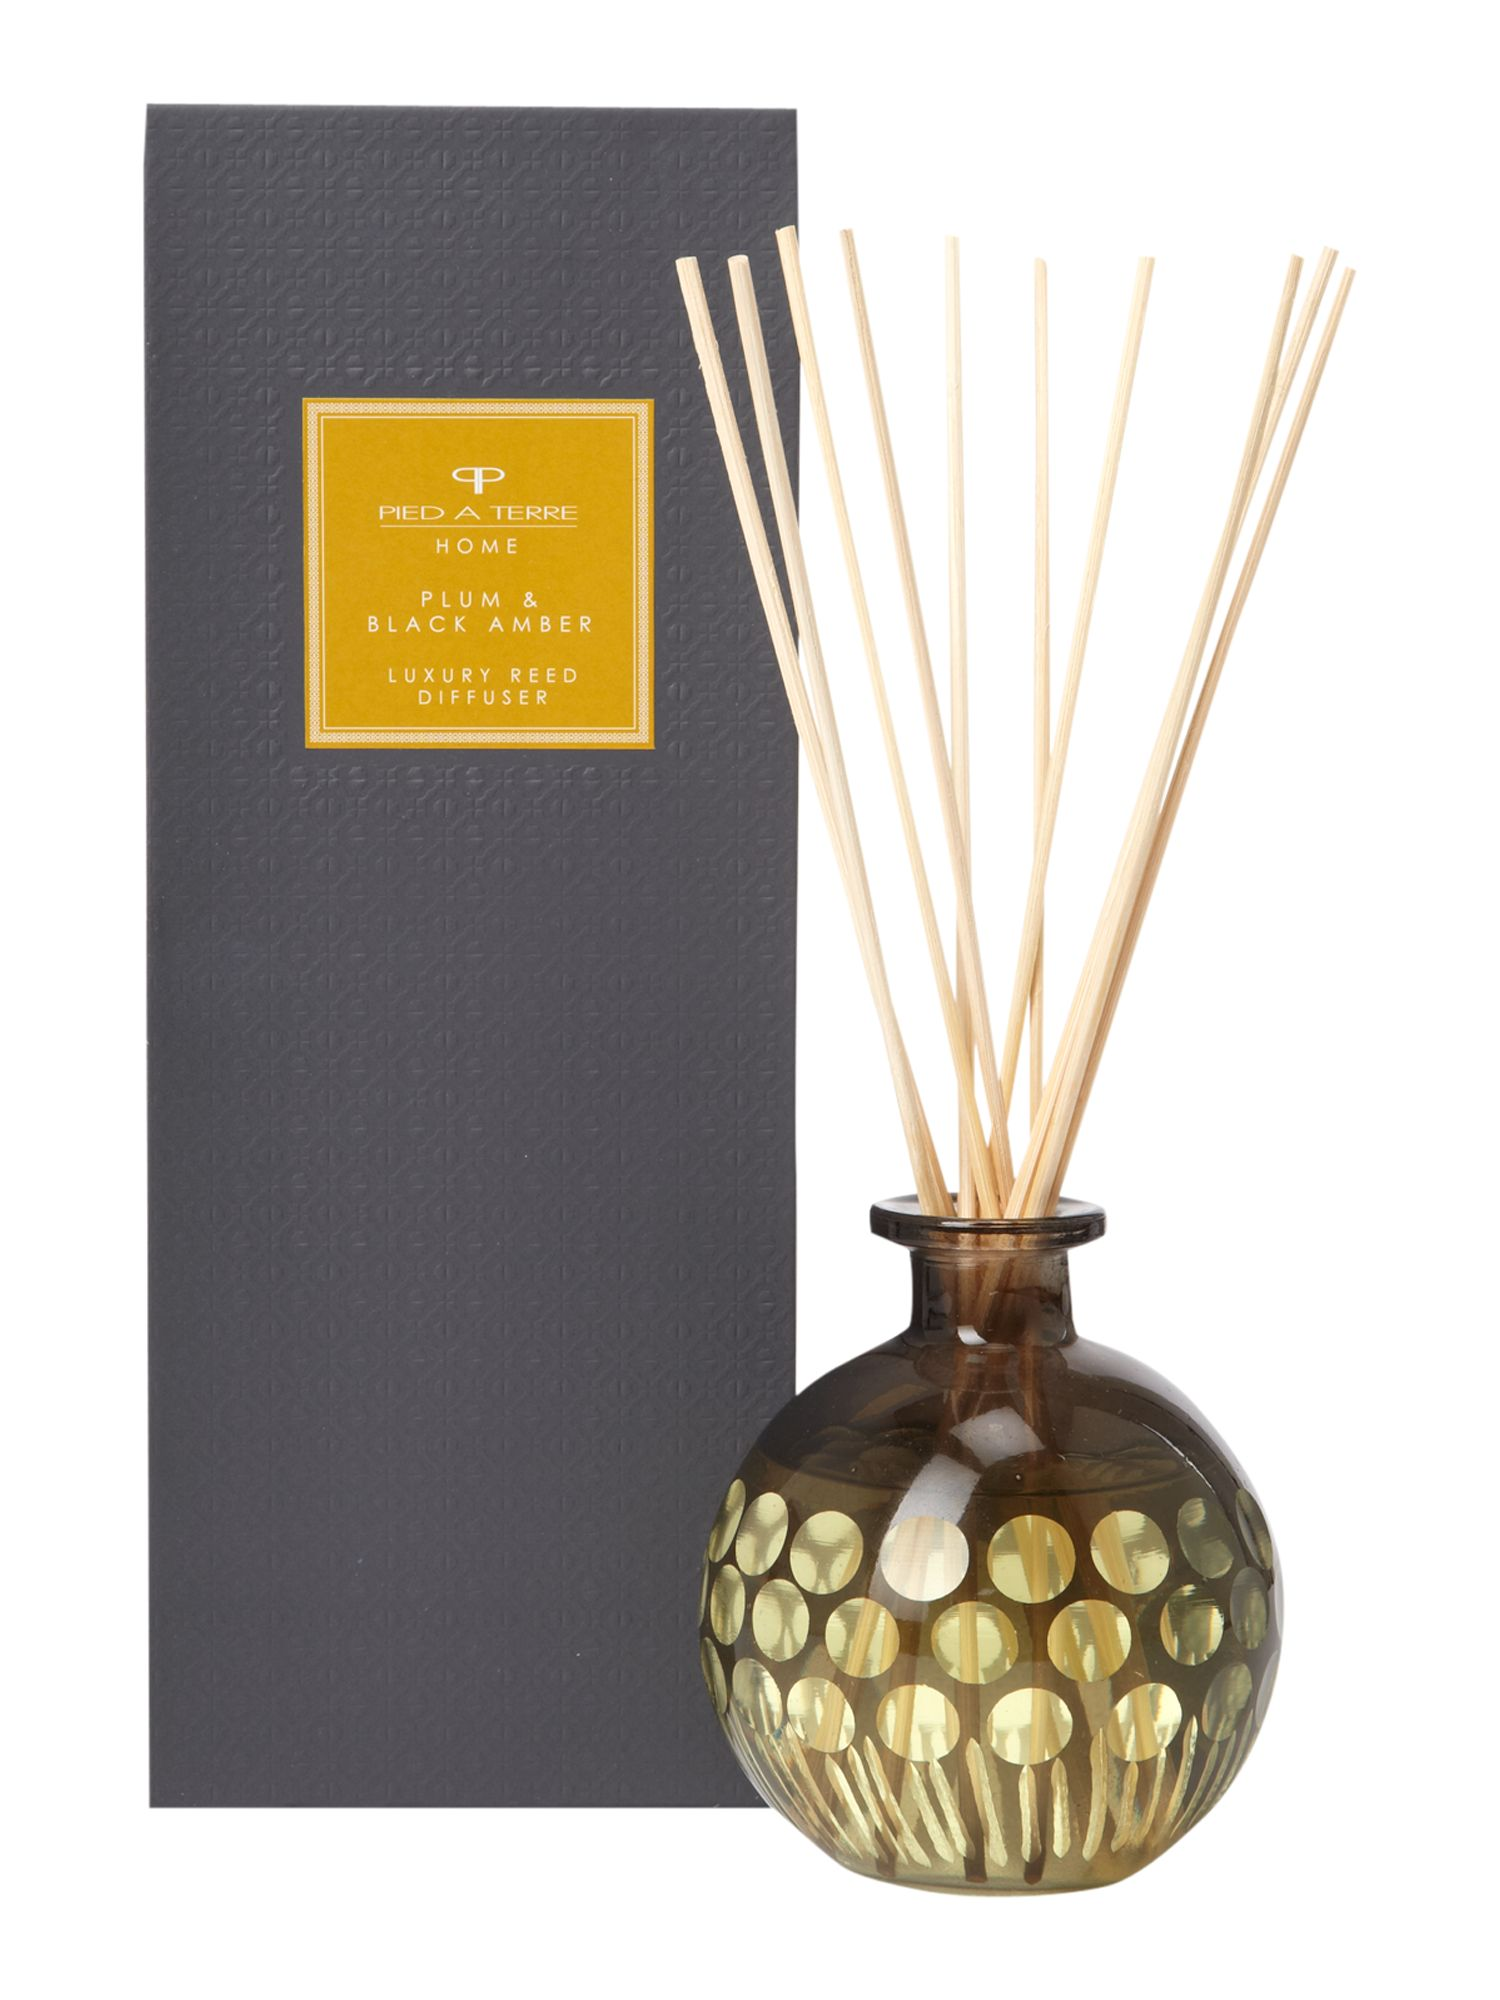 Plum and black amber diffuser